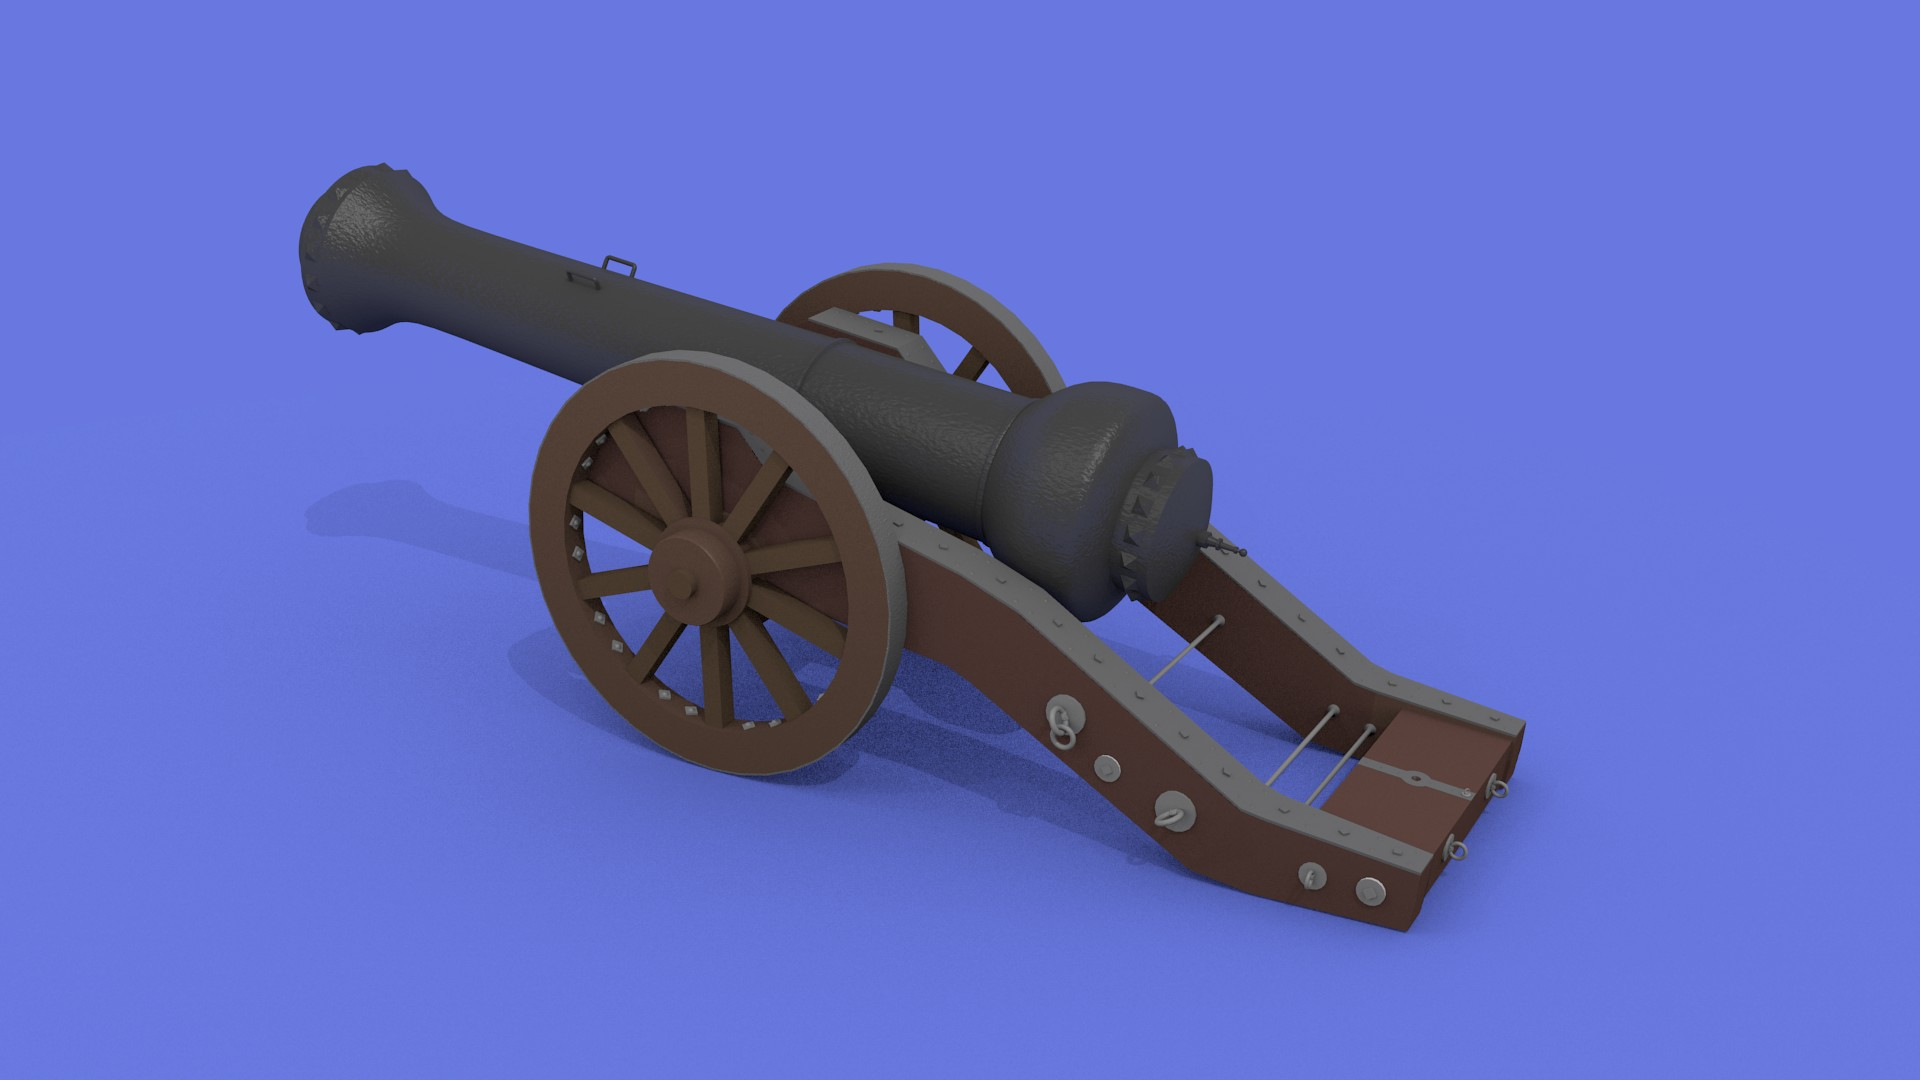 #248 - Based on an image of a toy cannon found on Google.